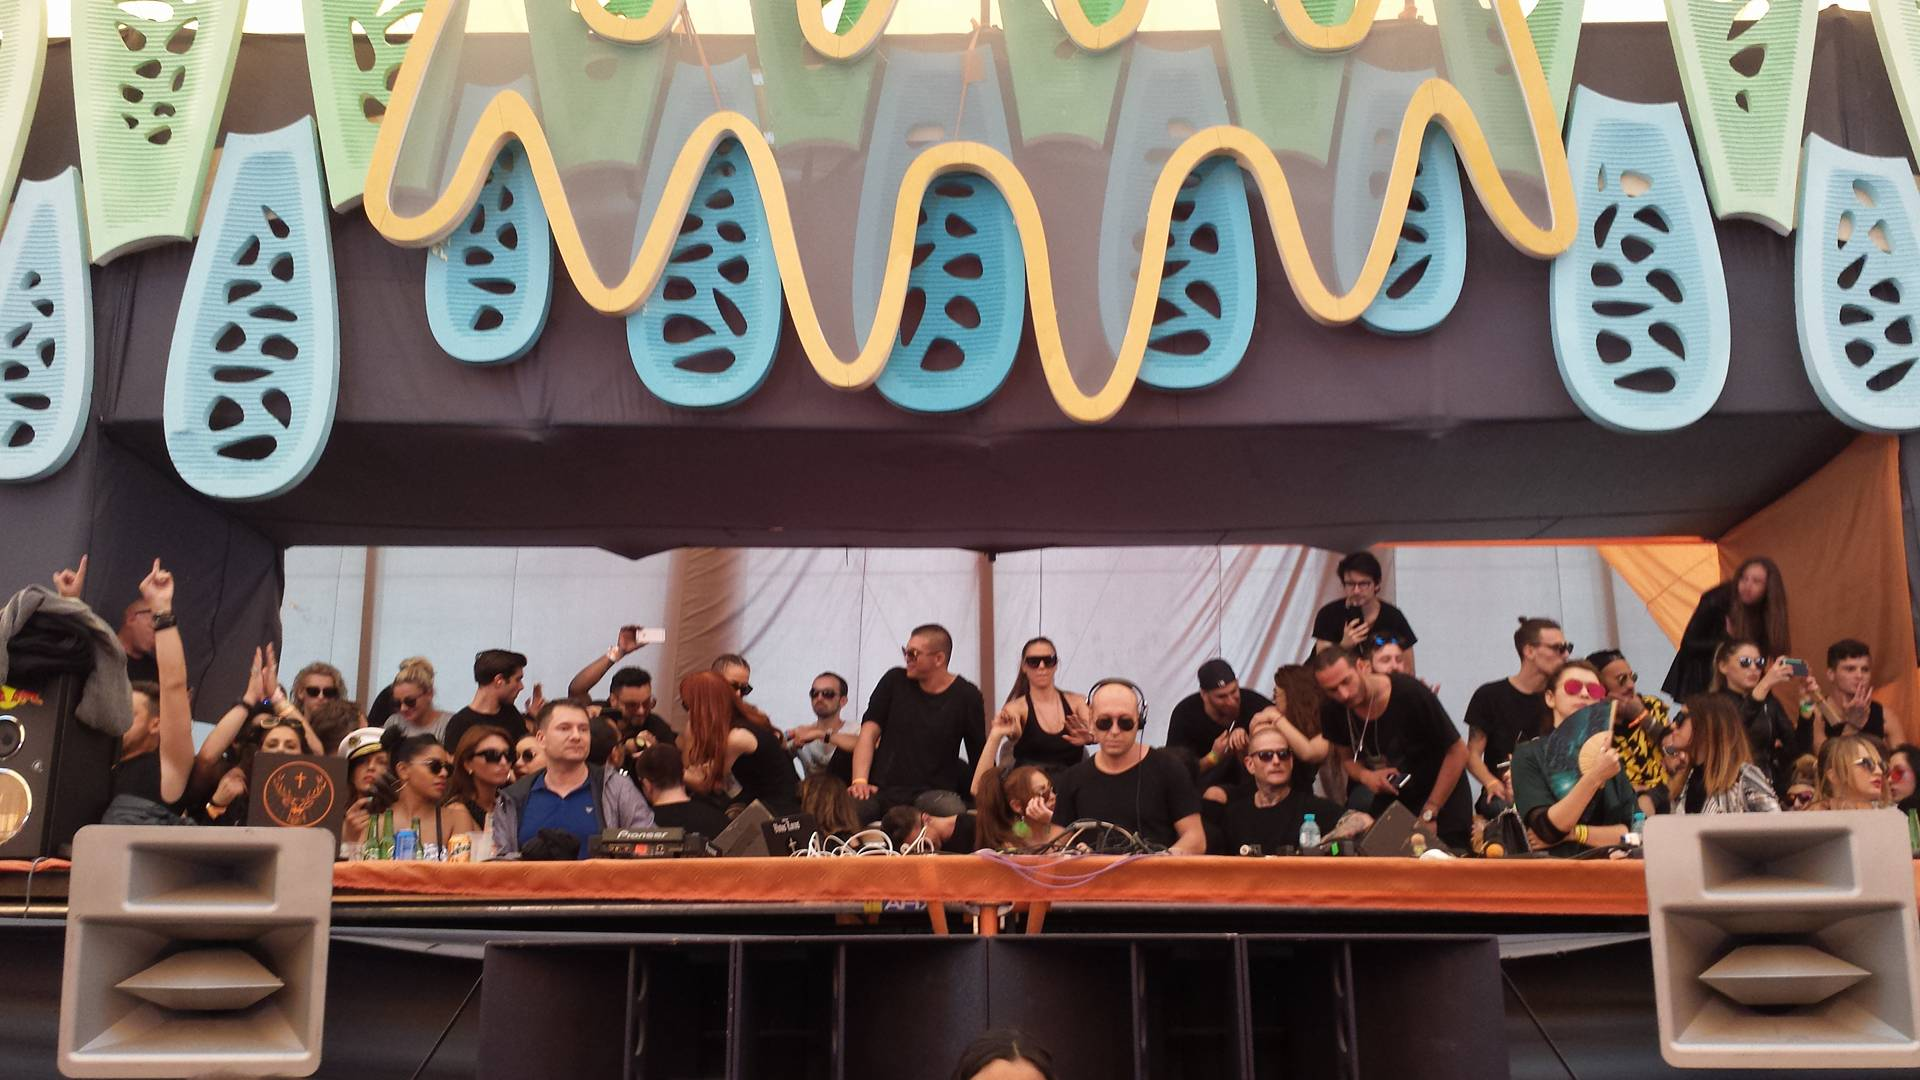 Marco Carola playing Sunwaves earlier today. Photo courtesy of Beatrice